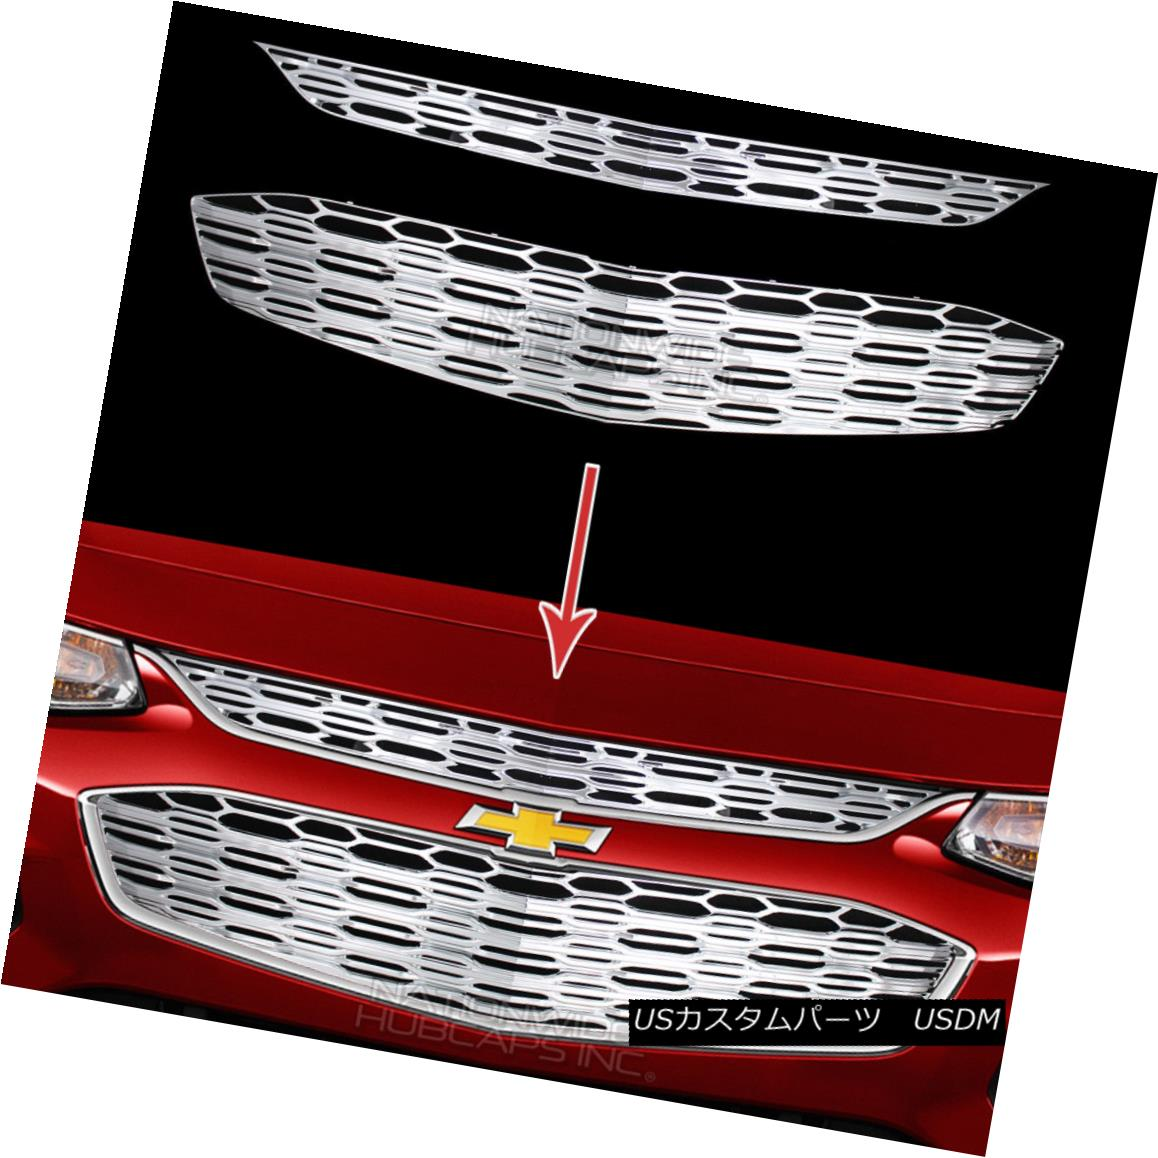 グリル 2016 17 2018 Chevrolet Malibu CHROME Snap On Grille Overlay Grill Covers Inserts 2016 17 2018 Chevrolet Malibu CHROMEスナップオングリルオーバーレイグリルカバーインサート